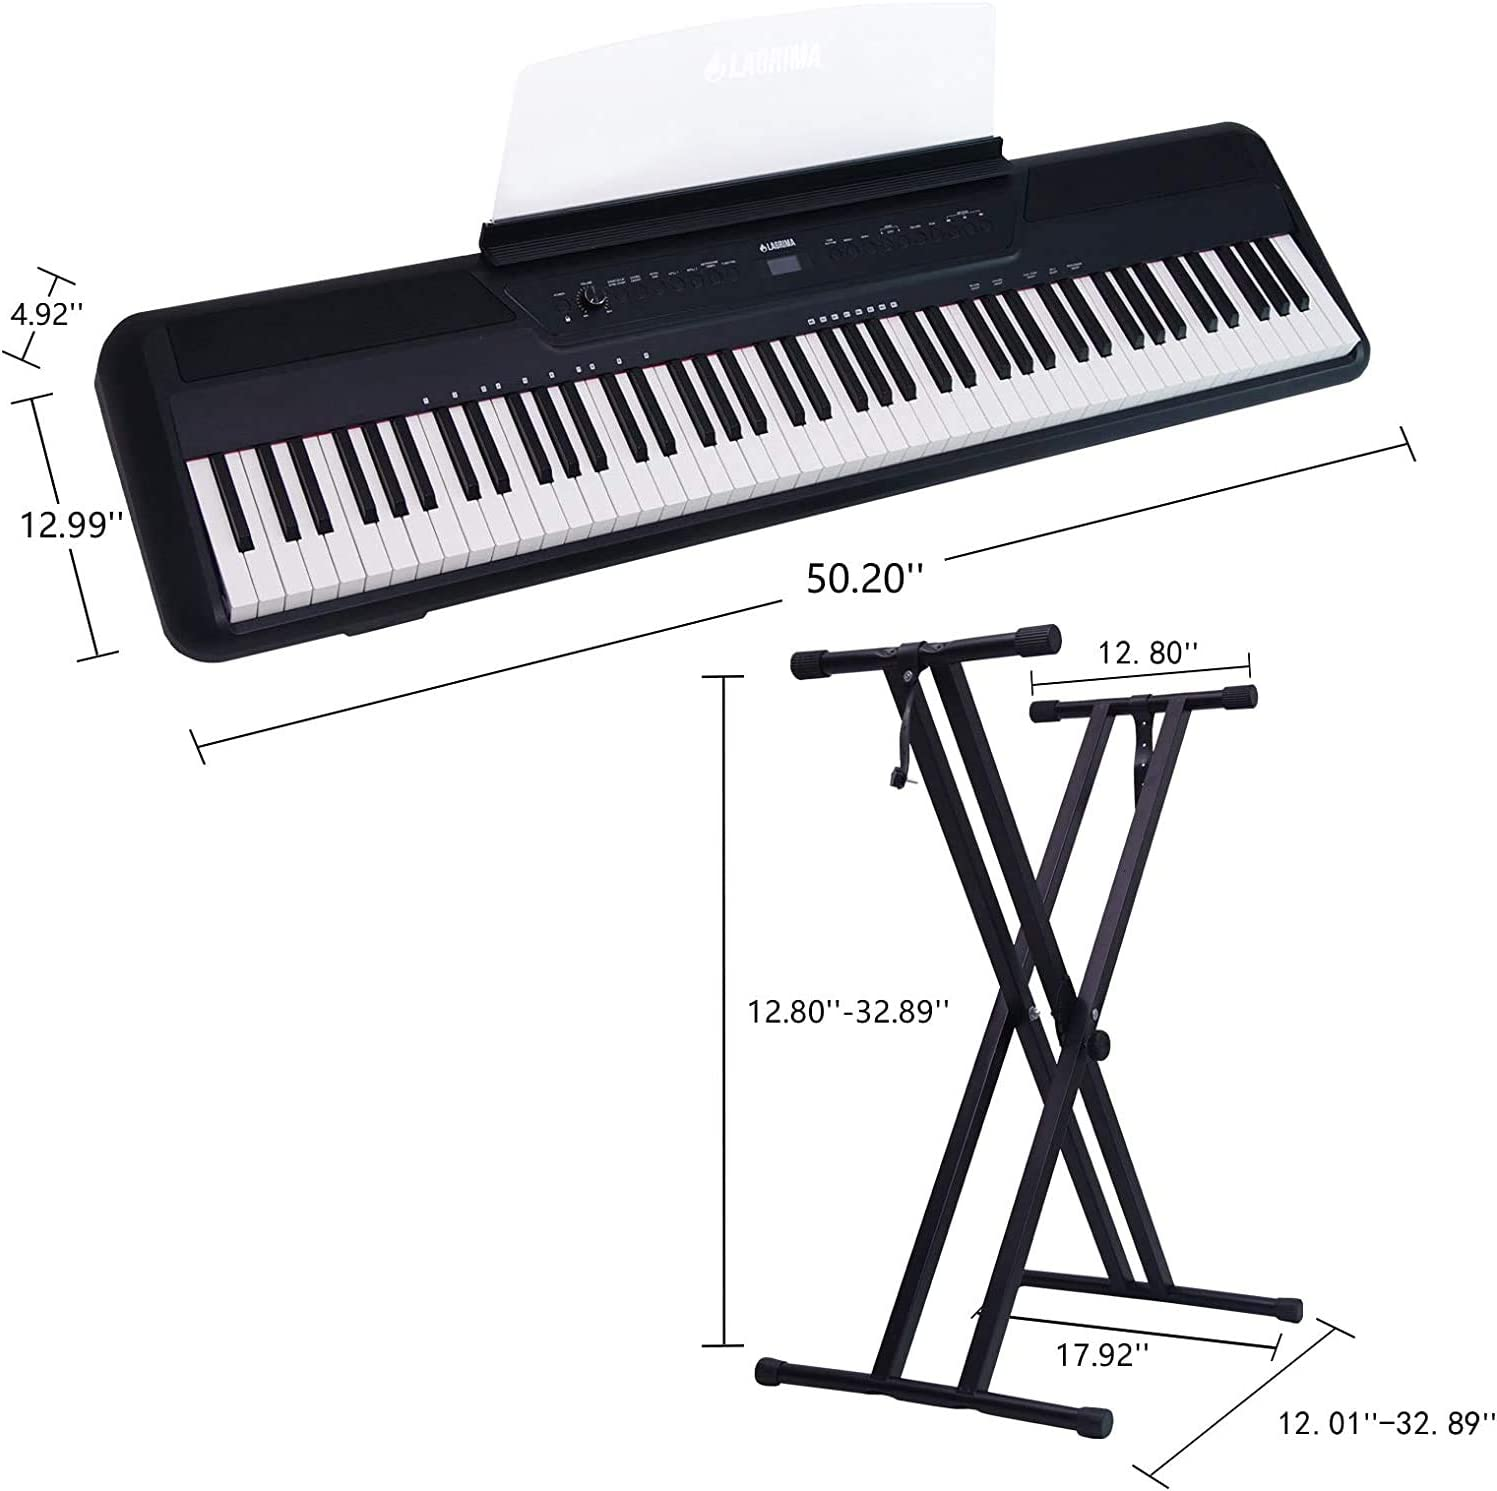 X Stand,Sustain Pedal,Power Adapter Assile 88 Key Digital Piano Electric Piano Portable Piano for Beginner Adults with Standard Keys